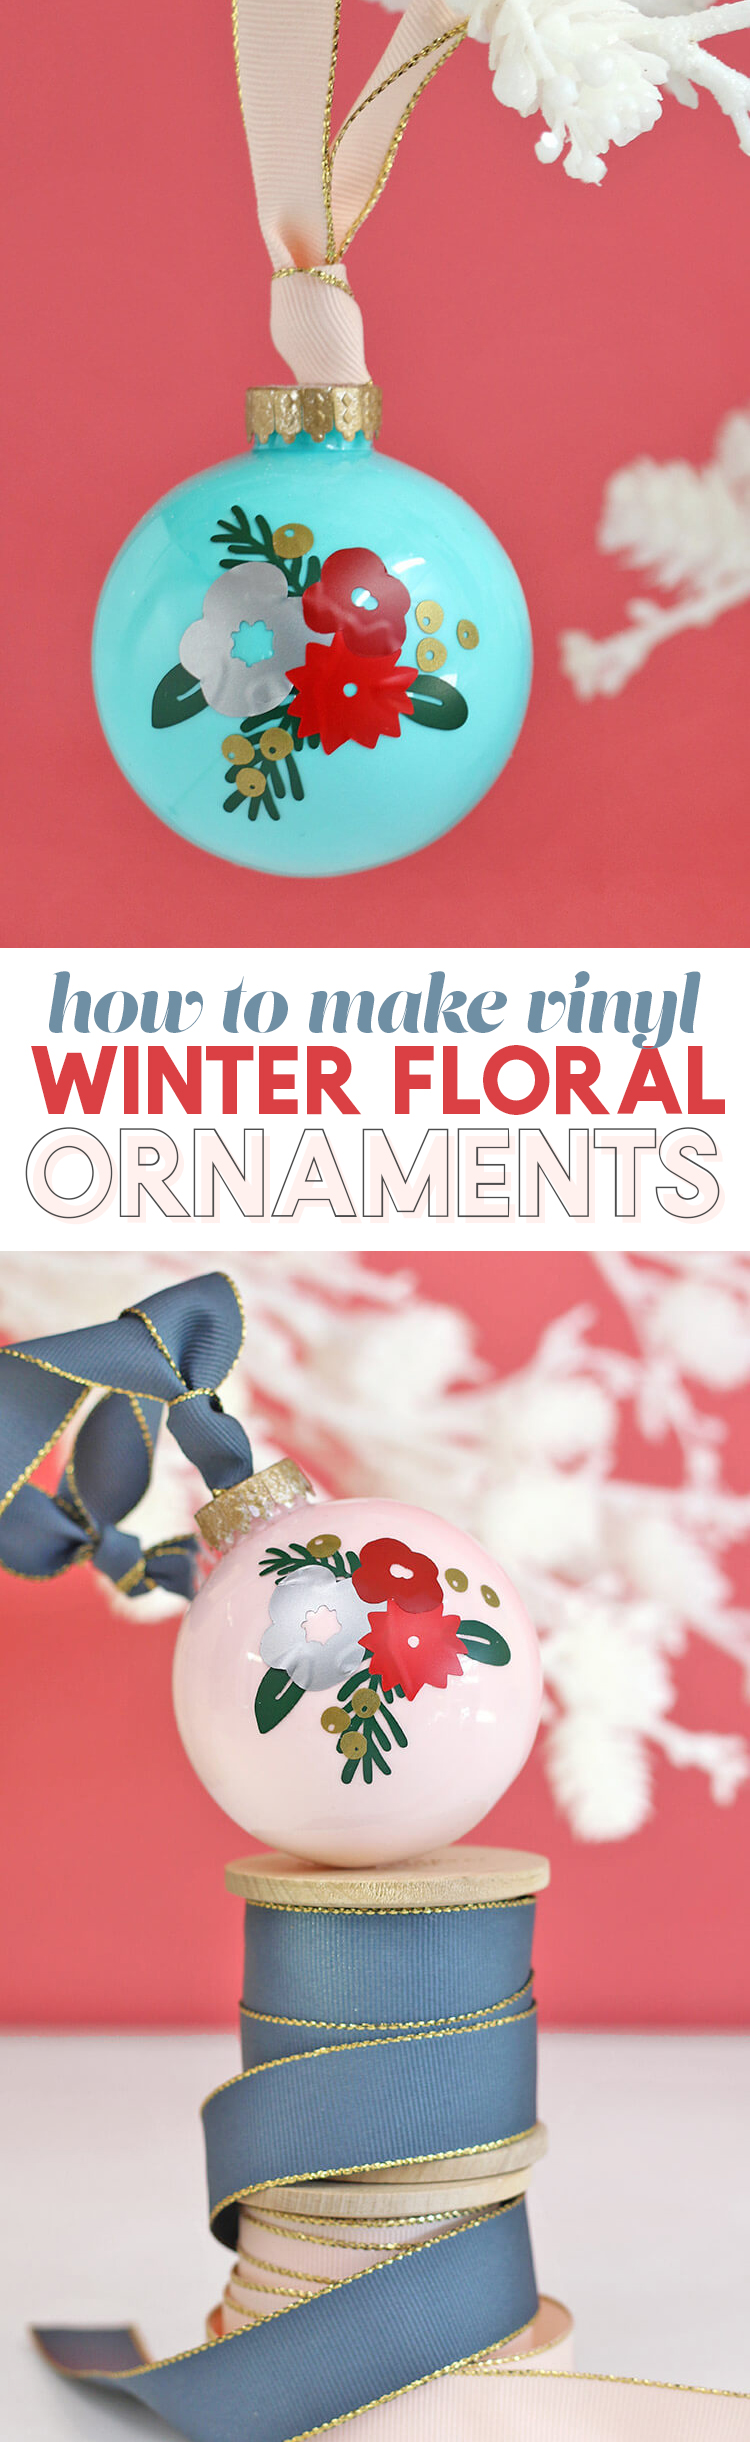 diy christmas ornaments - pretty winter floral design made with craft vinyl